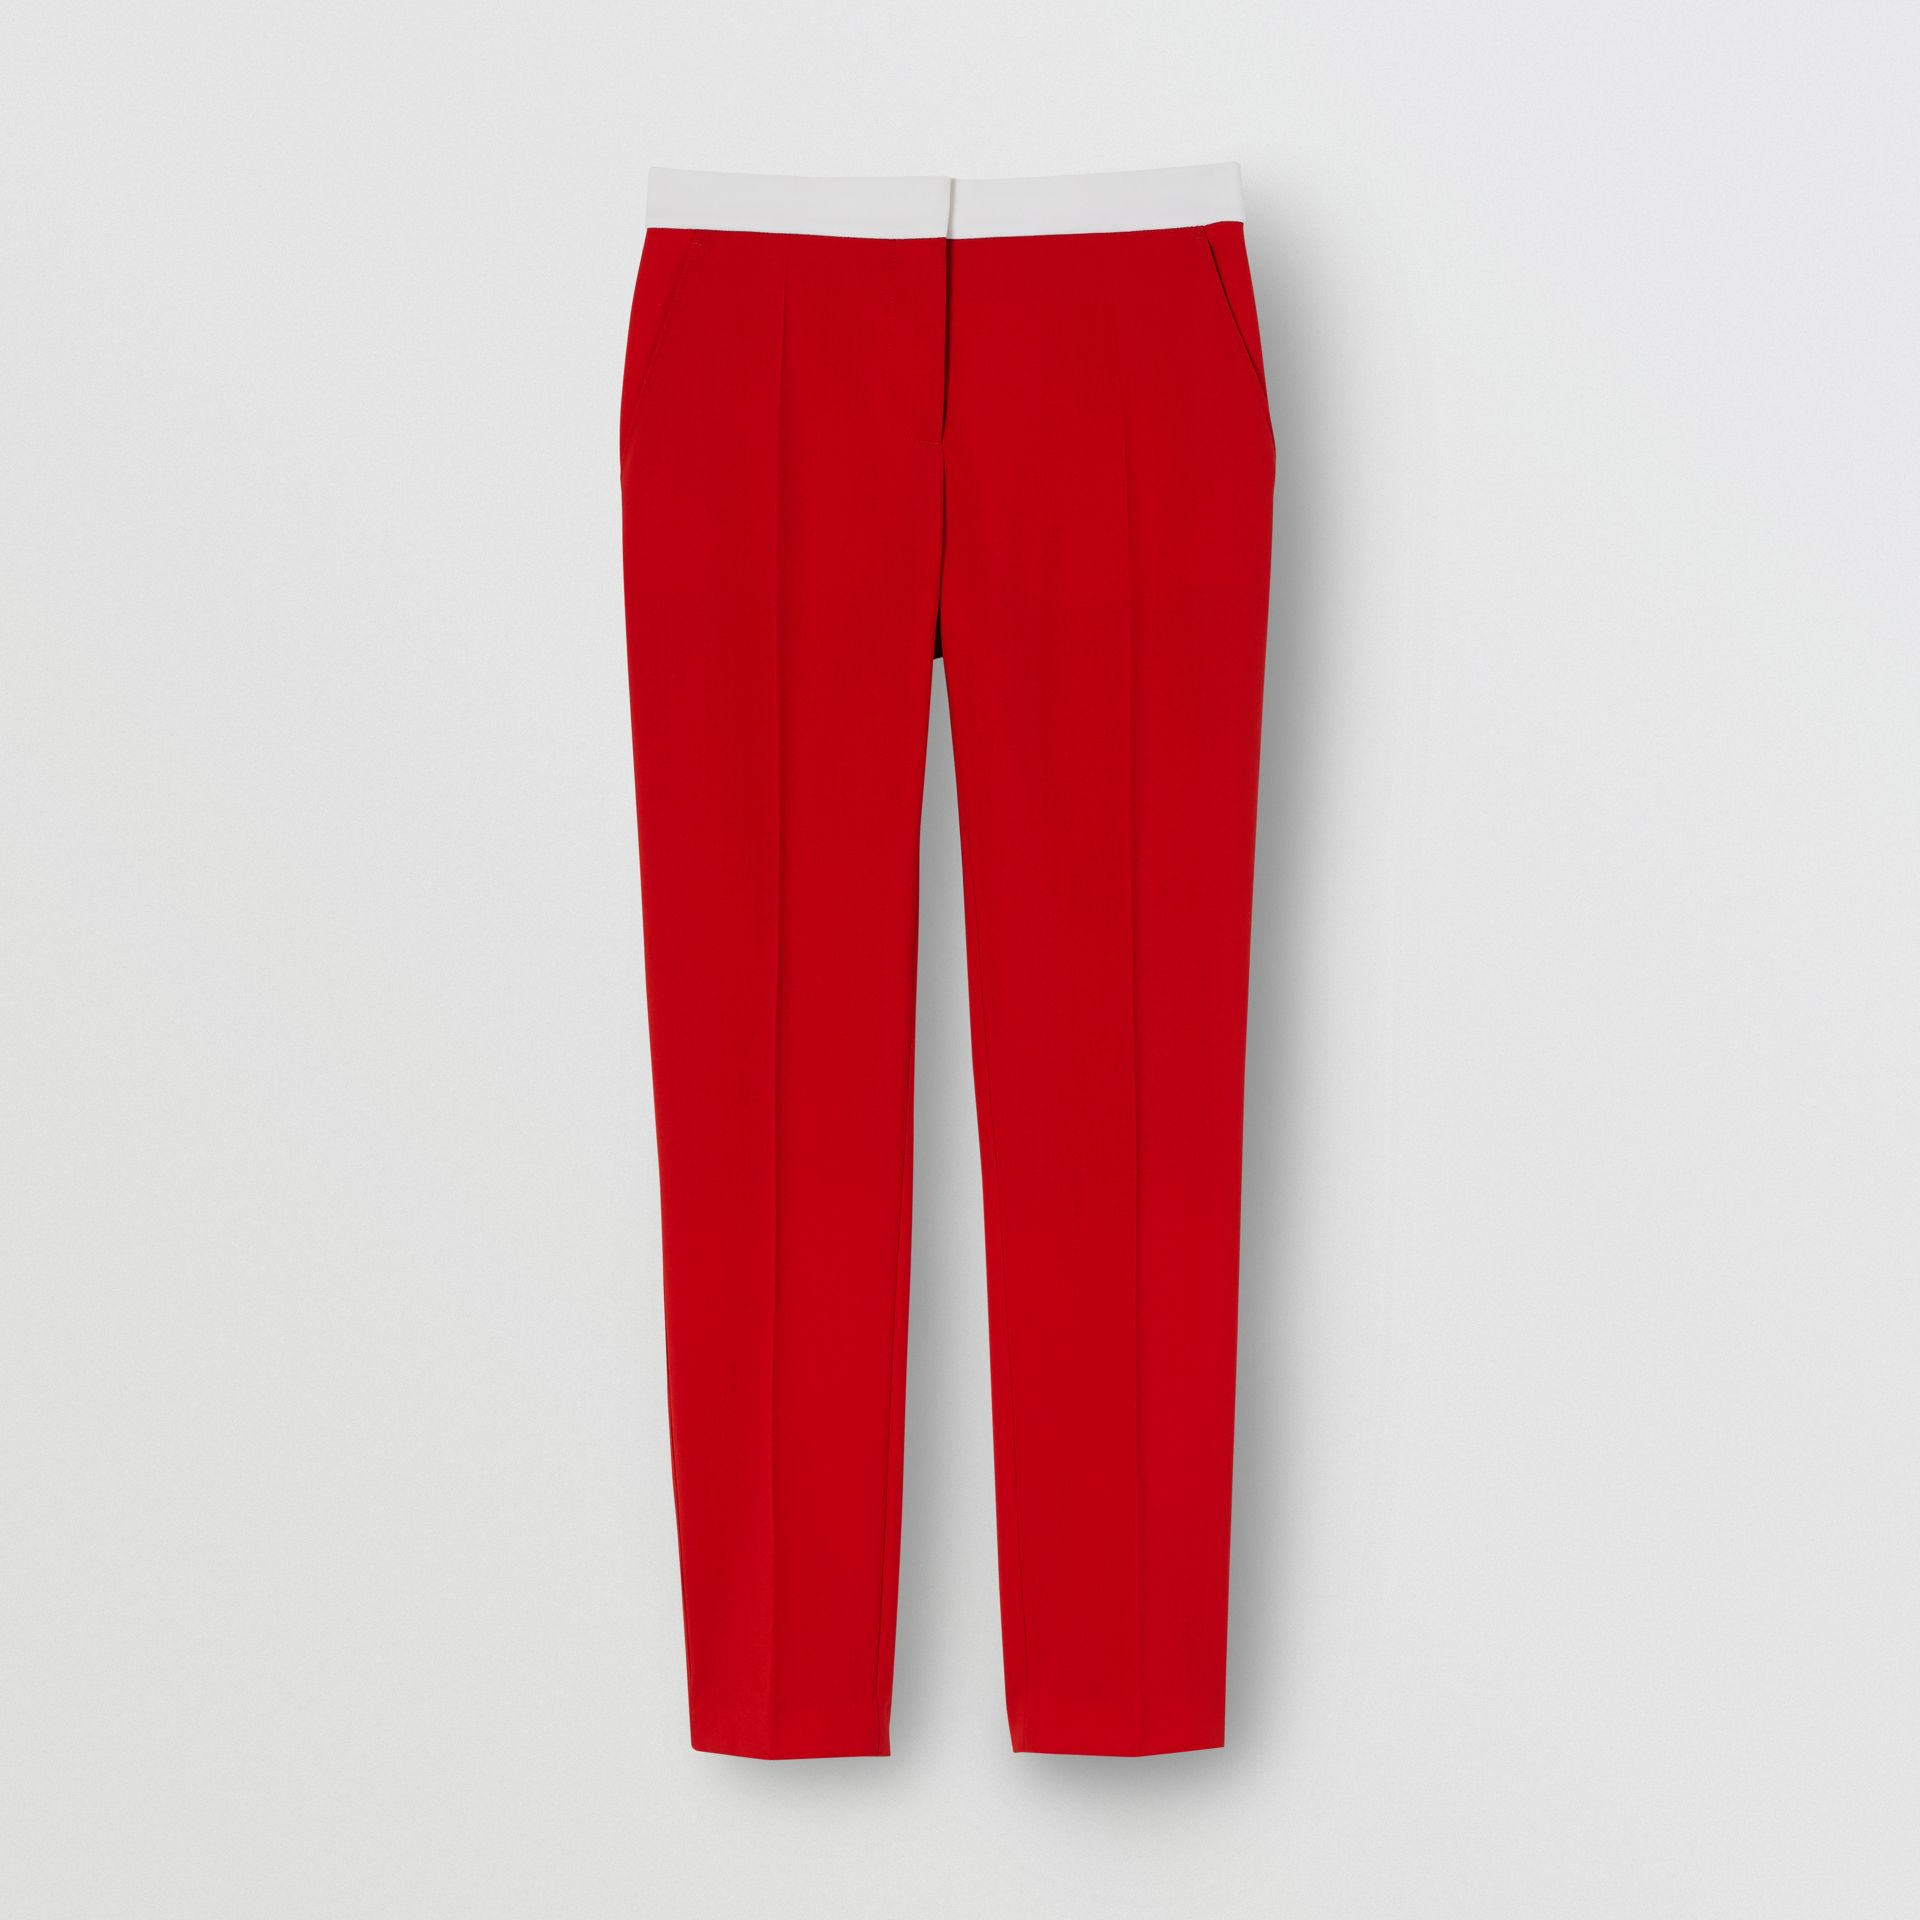 Two-tone Wool Tailored Trousers in Bright Red - Women | Burberry Canada - gallery image 3